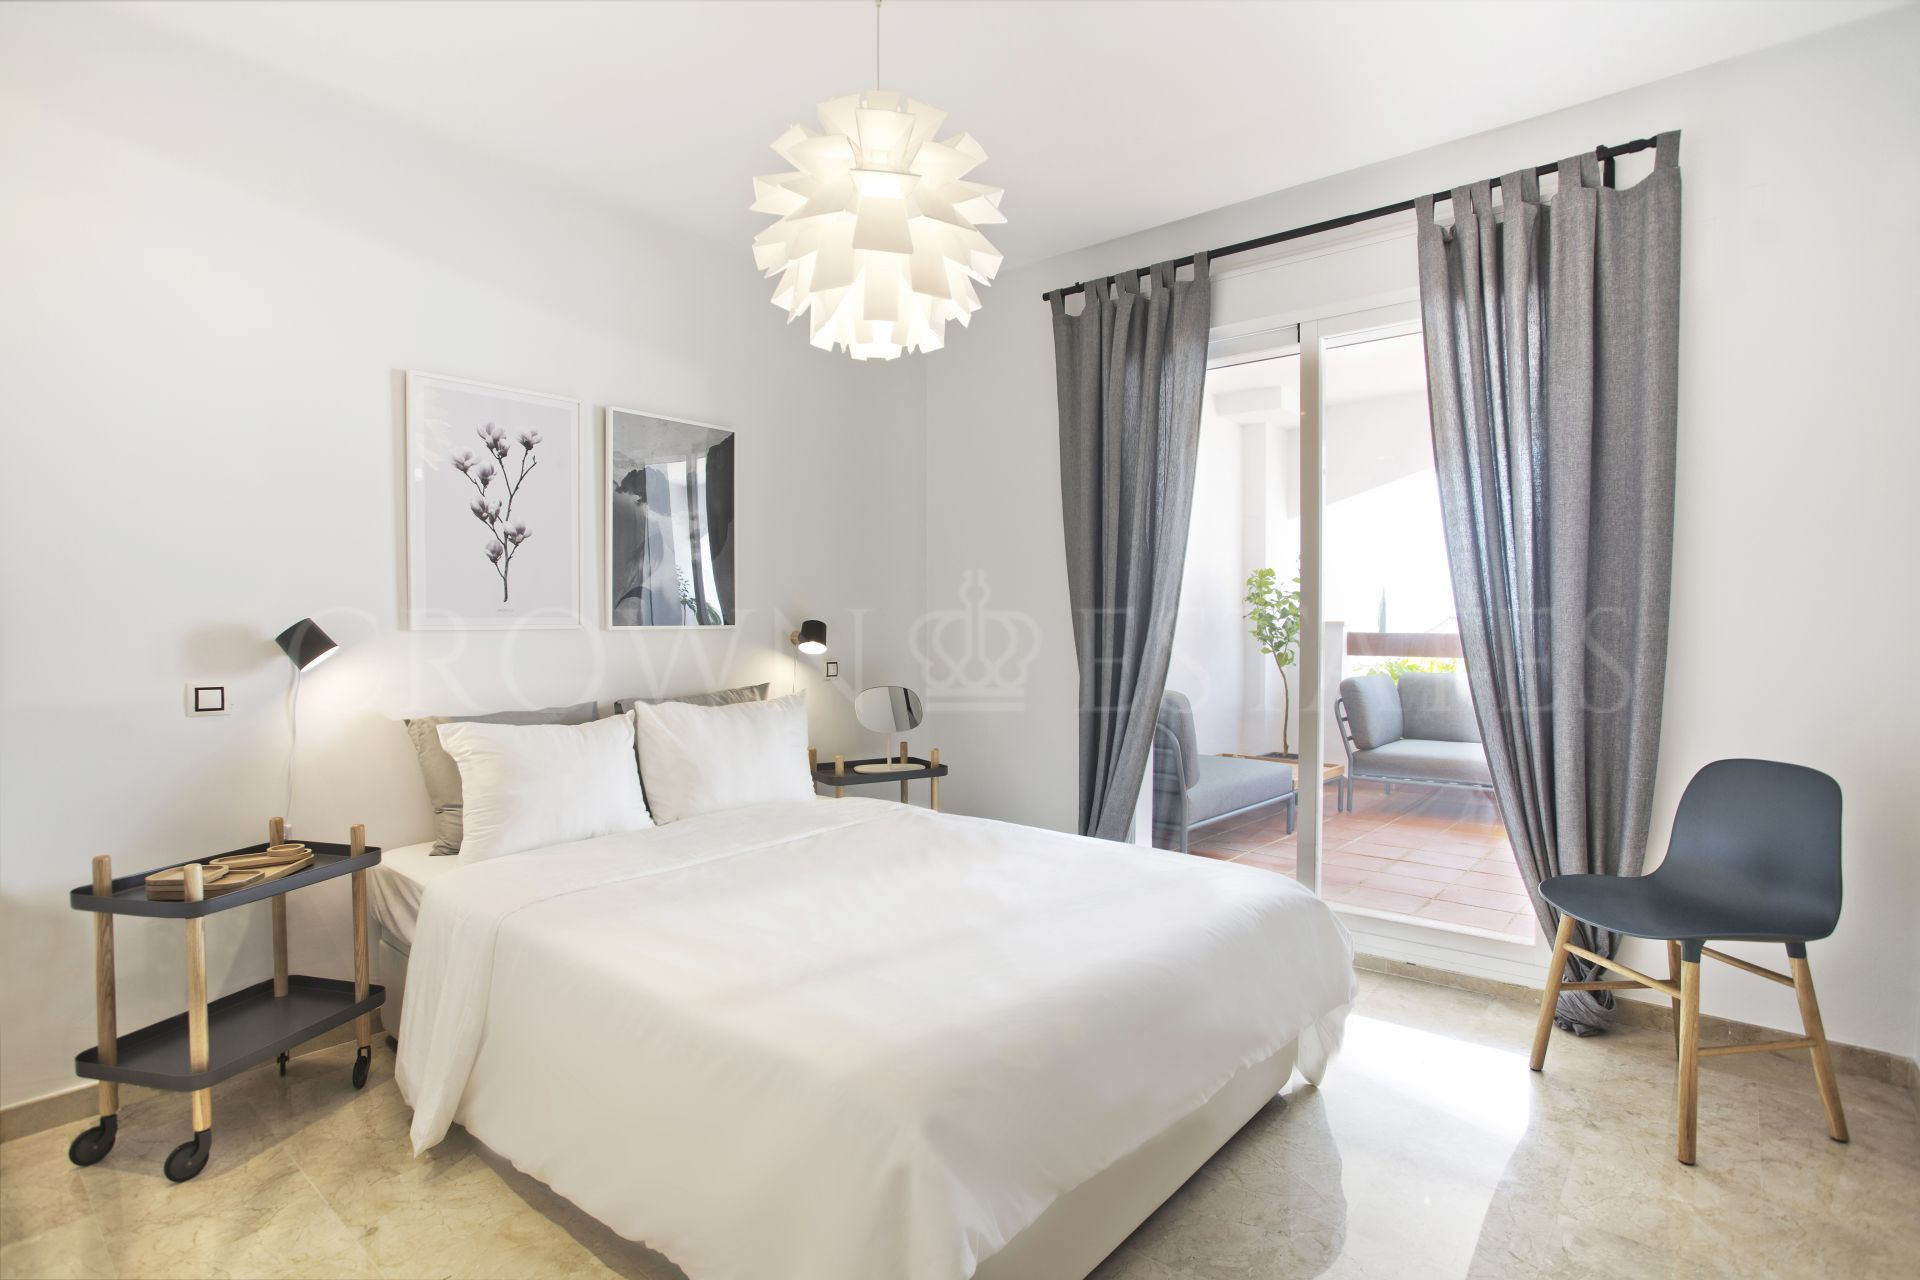 Aloha Royal, brand new apartments and penthouses in Nueva Andalucía